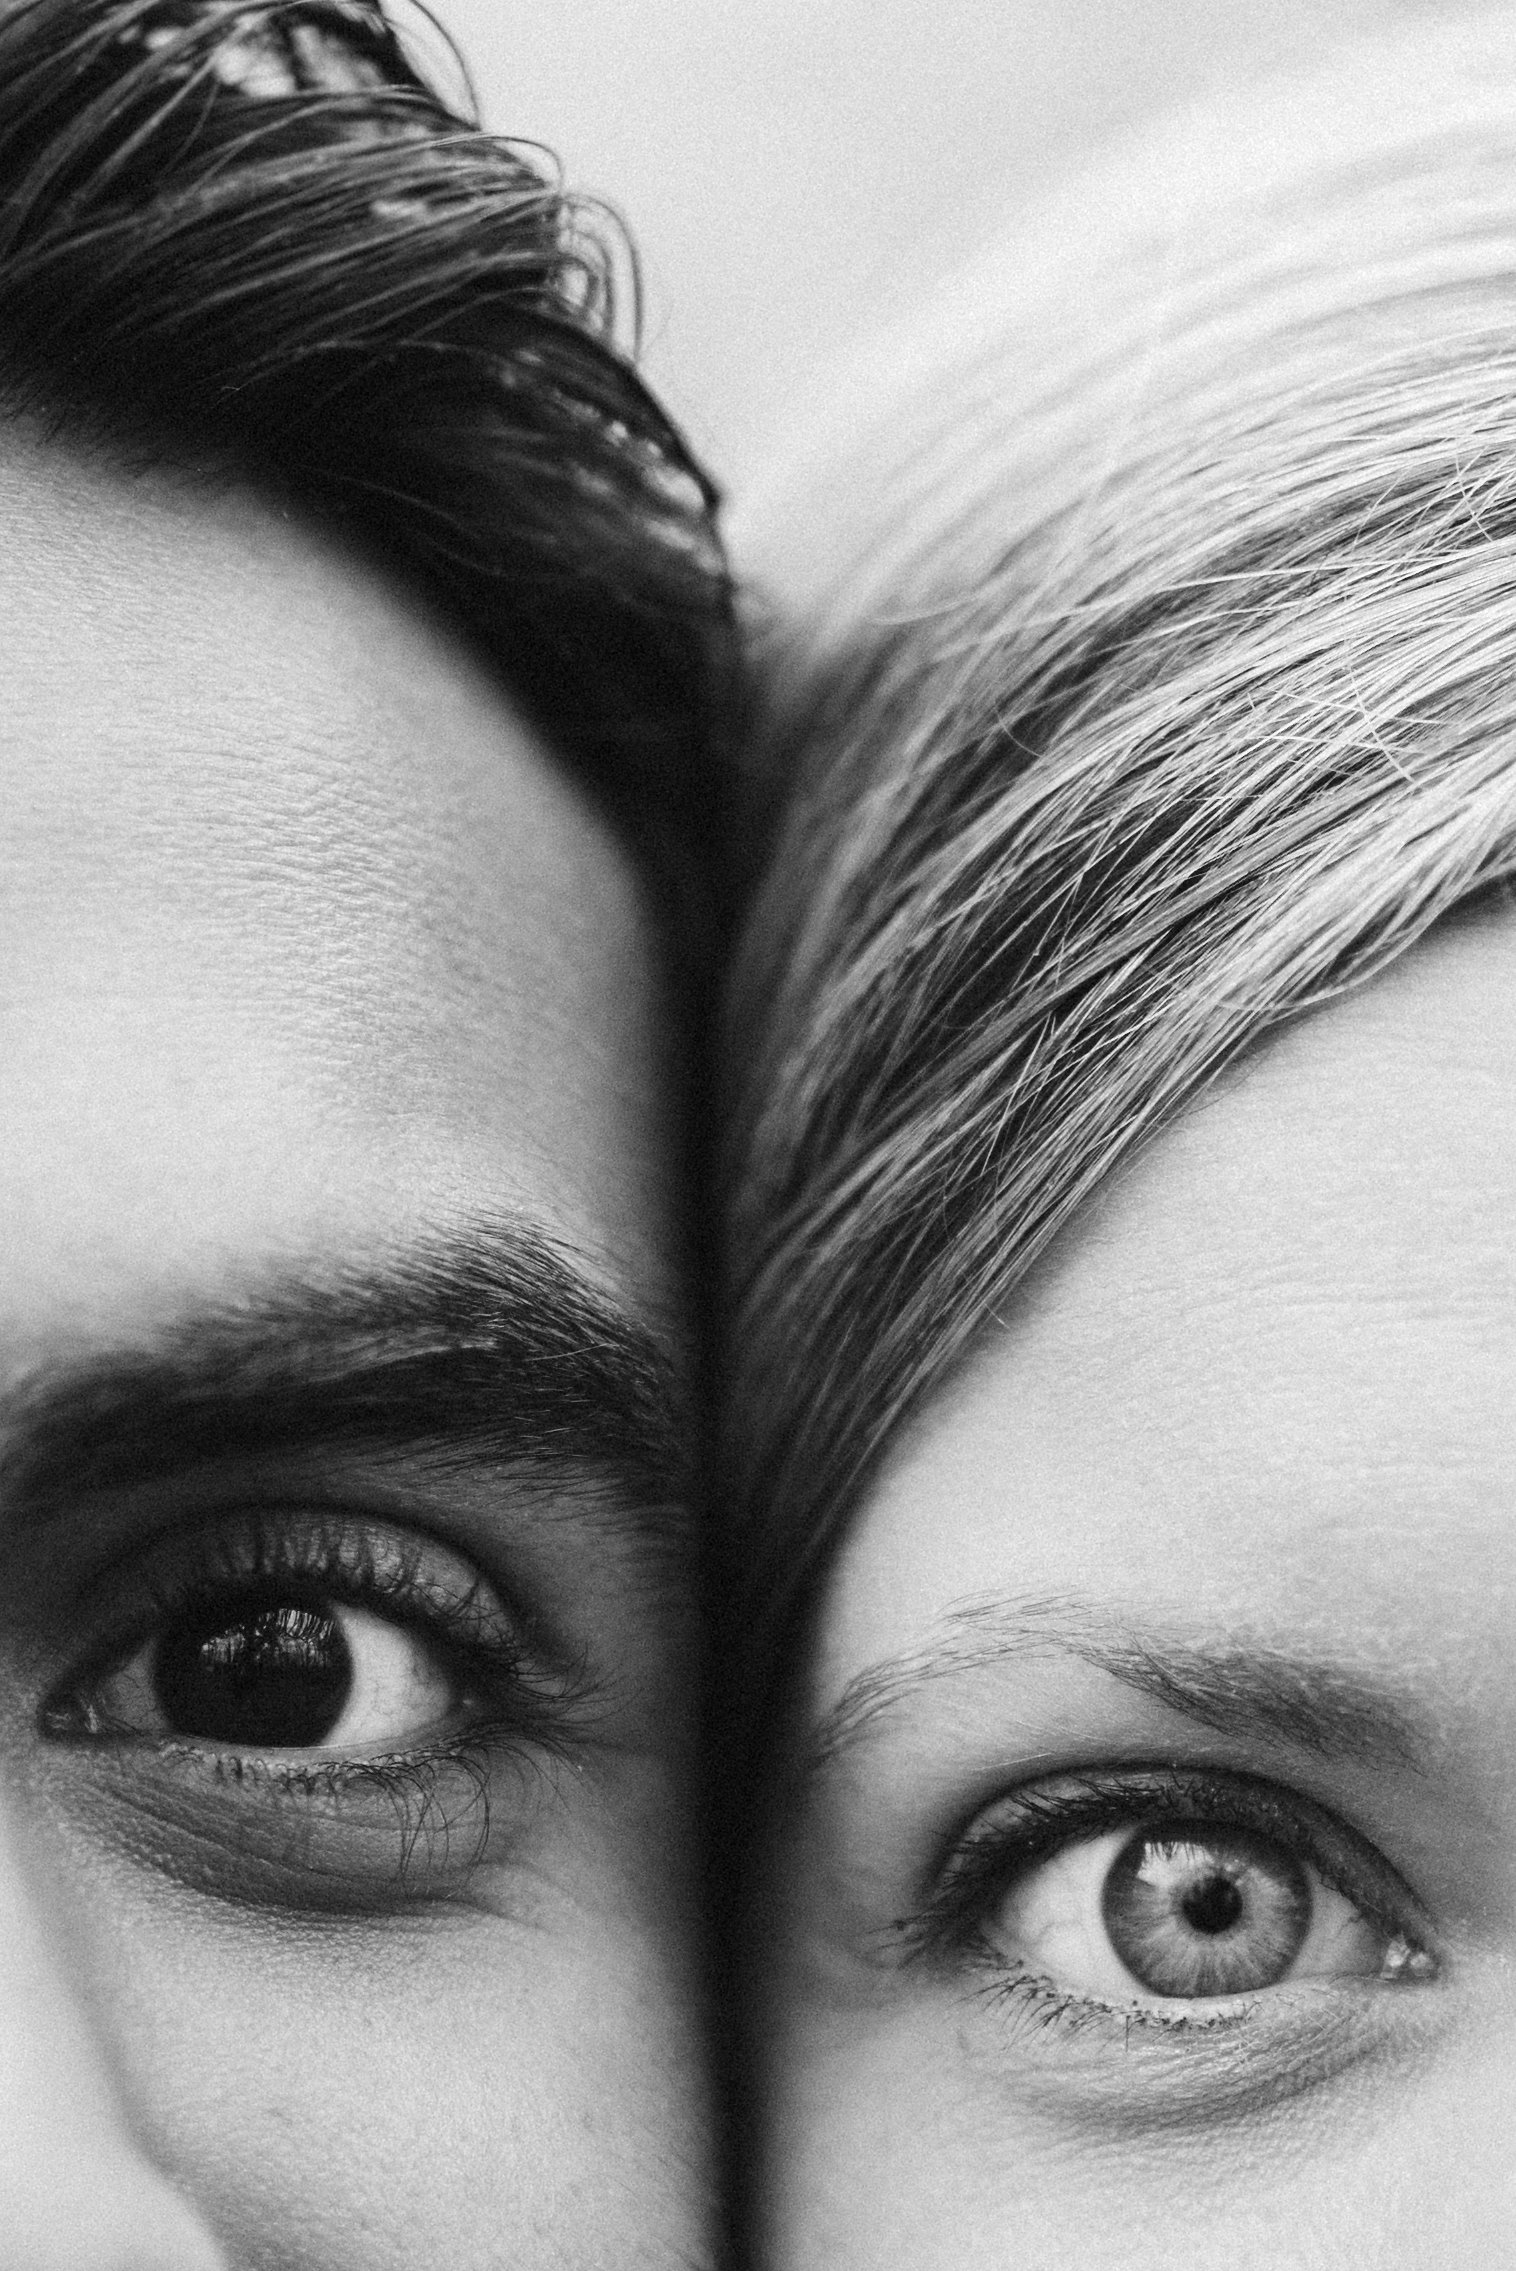 Engagement Photos, Rainy, Ellicott City, Maryland Wedding Photographer, Winter, Overhills Mansion, Indian American, Historical, Classic, Bride and Groom, Close Up Photo, Black and White Photo